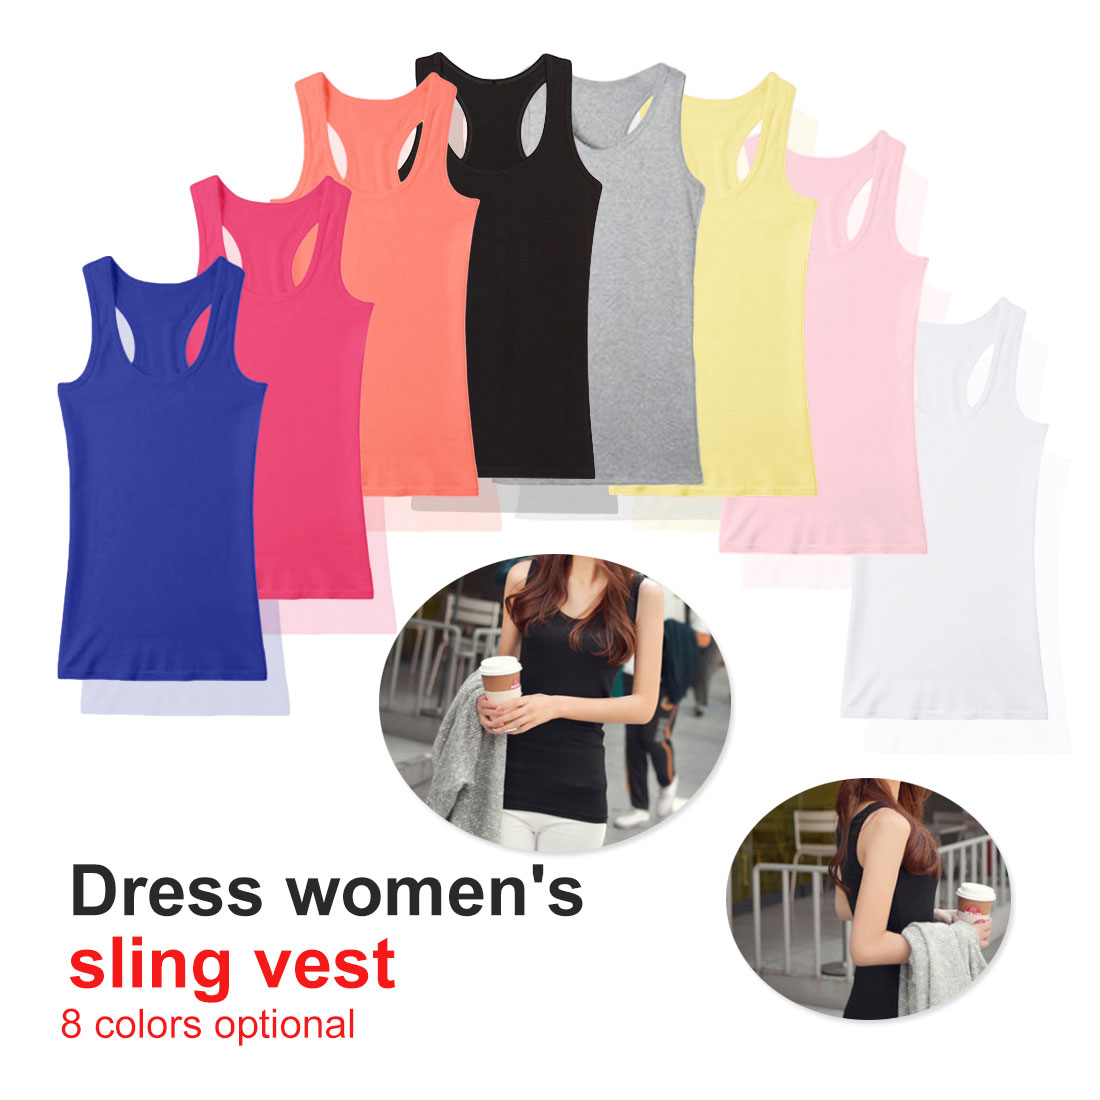 Women Spring Summer Tank Tops Sleeveless Loose Tee Tops Ladies Round Neck Vest Singlets Camisole Cotton Slim Thin Vest-in Tank Tops from Women's Clothing